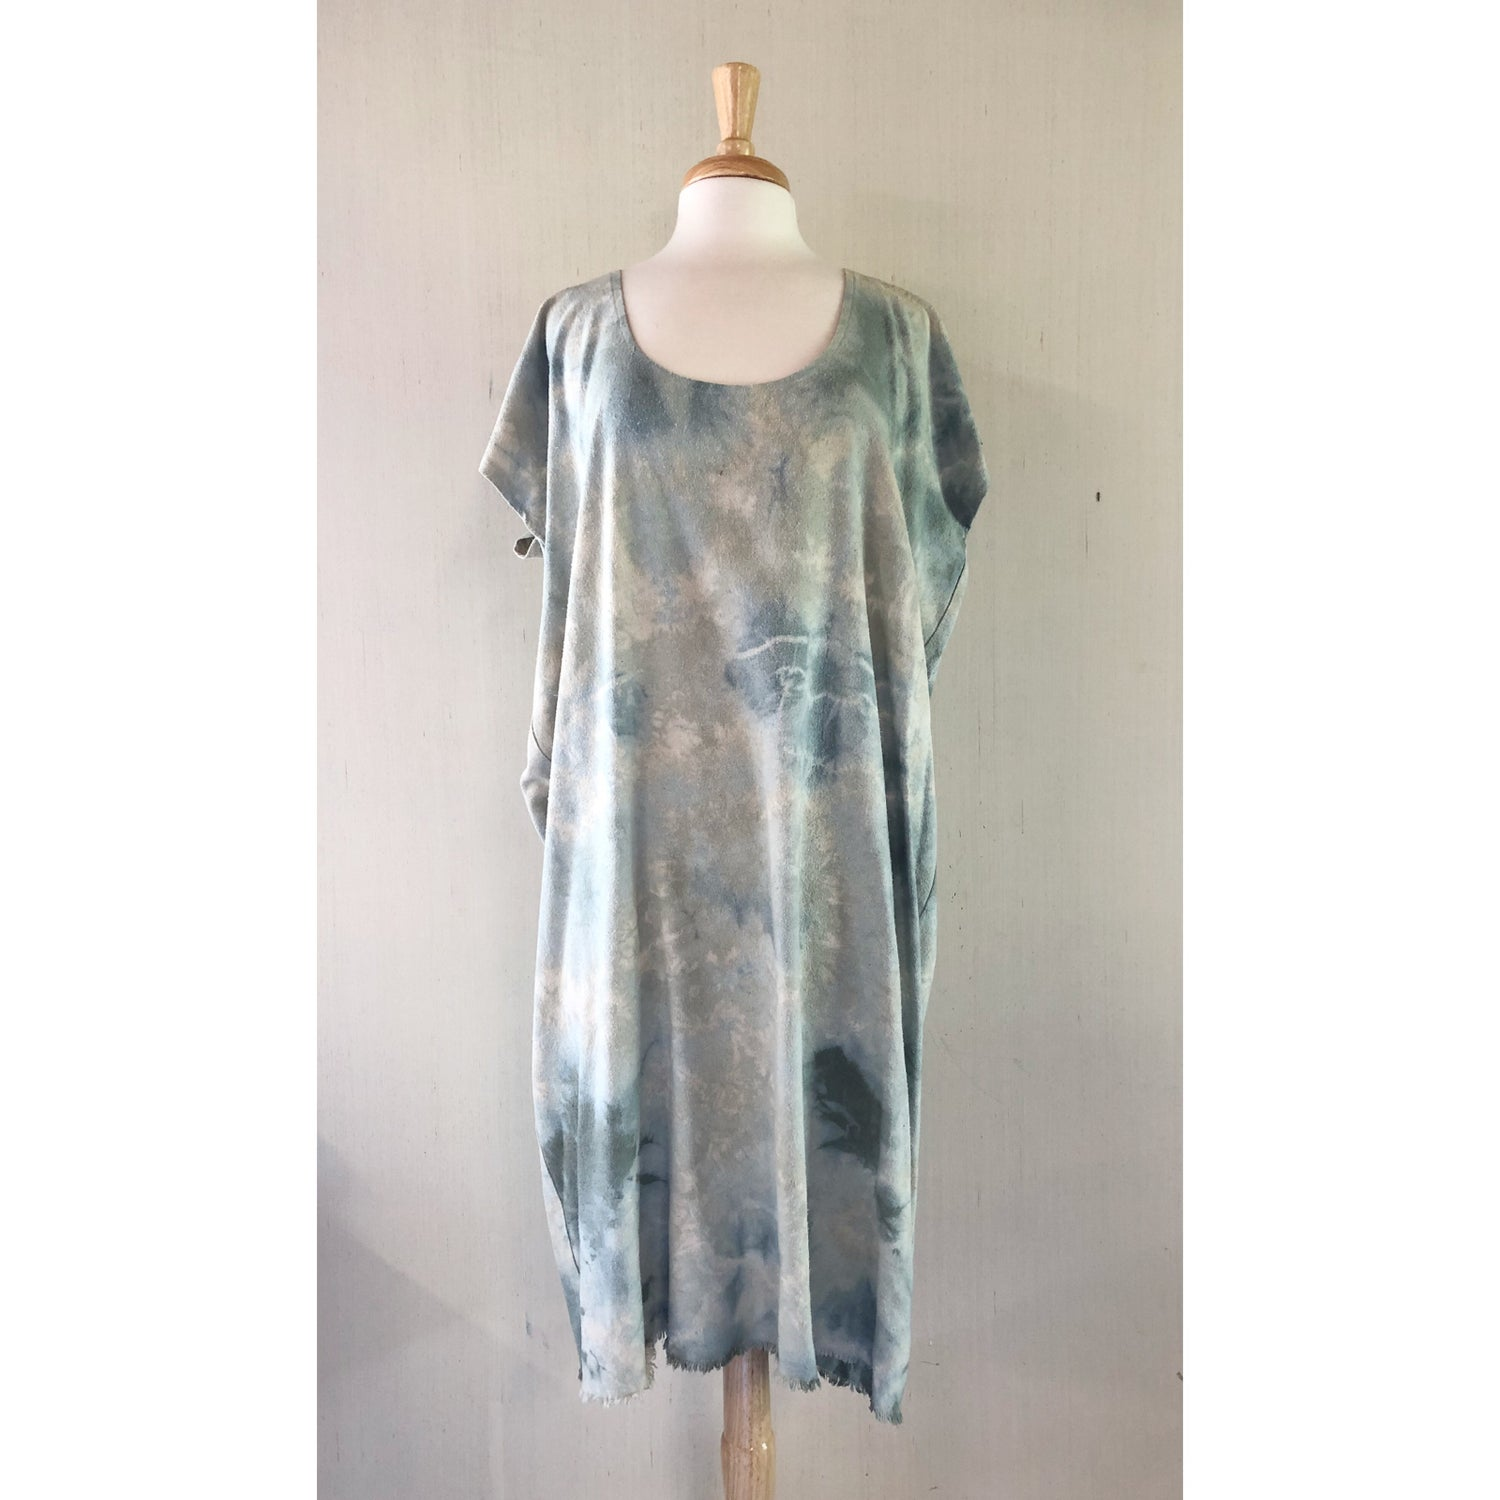 Image of Shibori Scoopdress